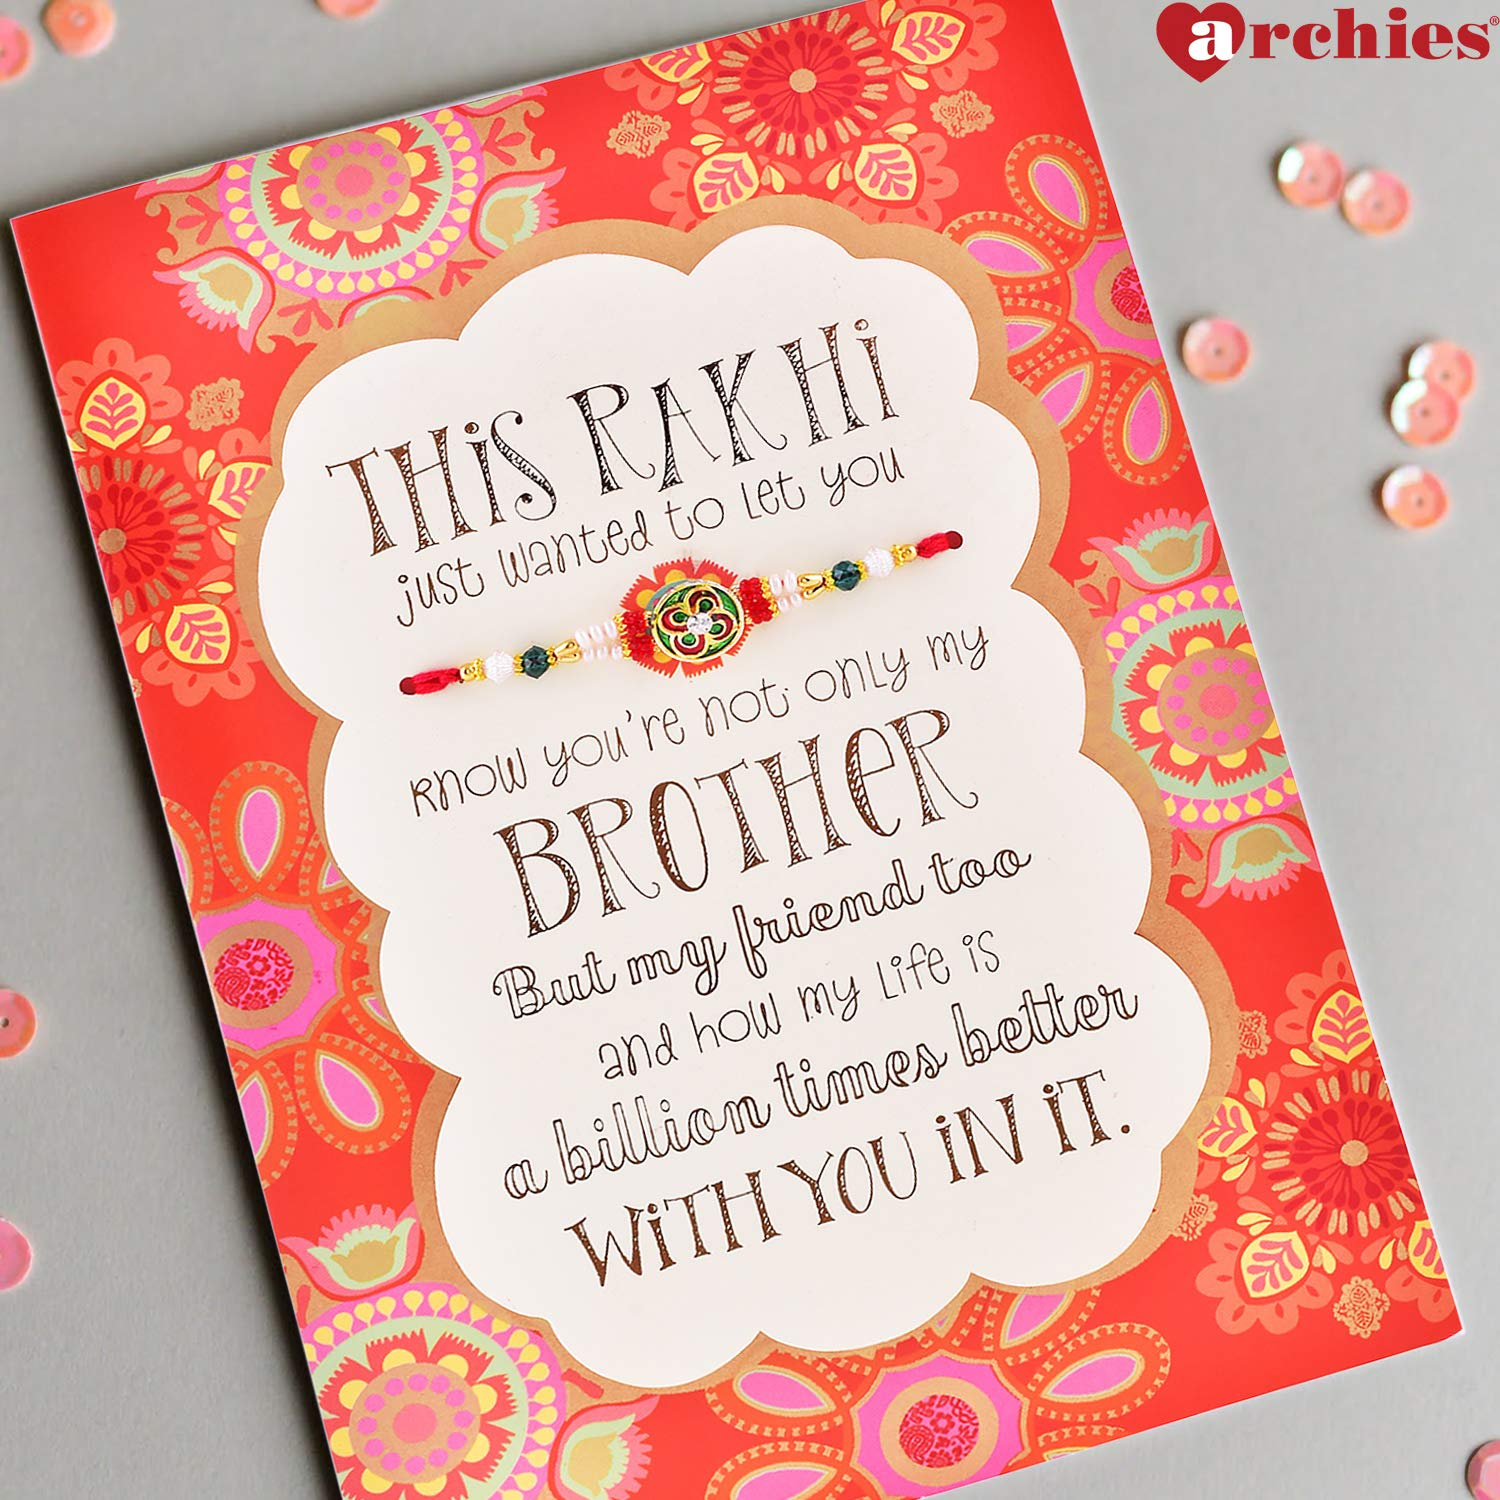 Archies Special Rakhi Card Combo For Brother Including Rakhi Roli